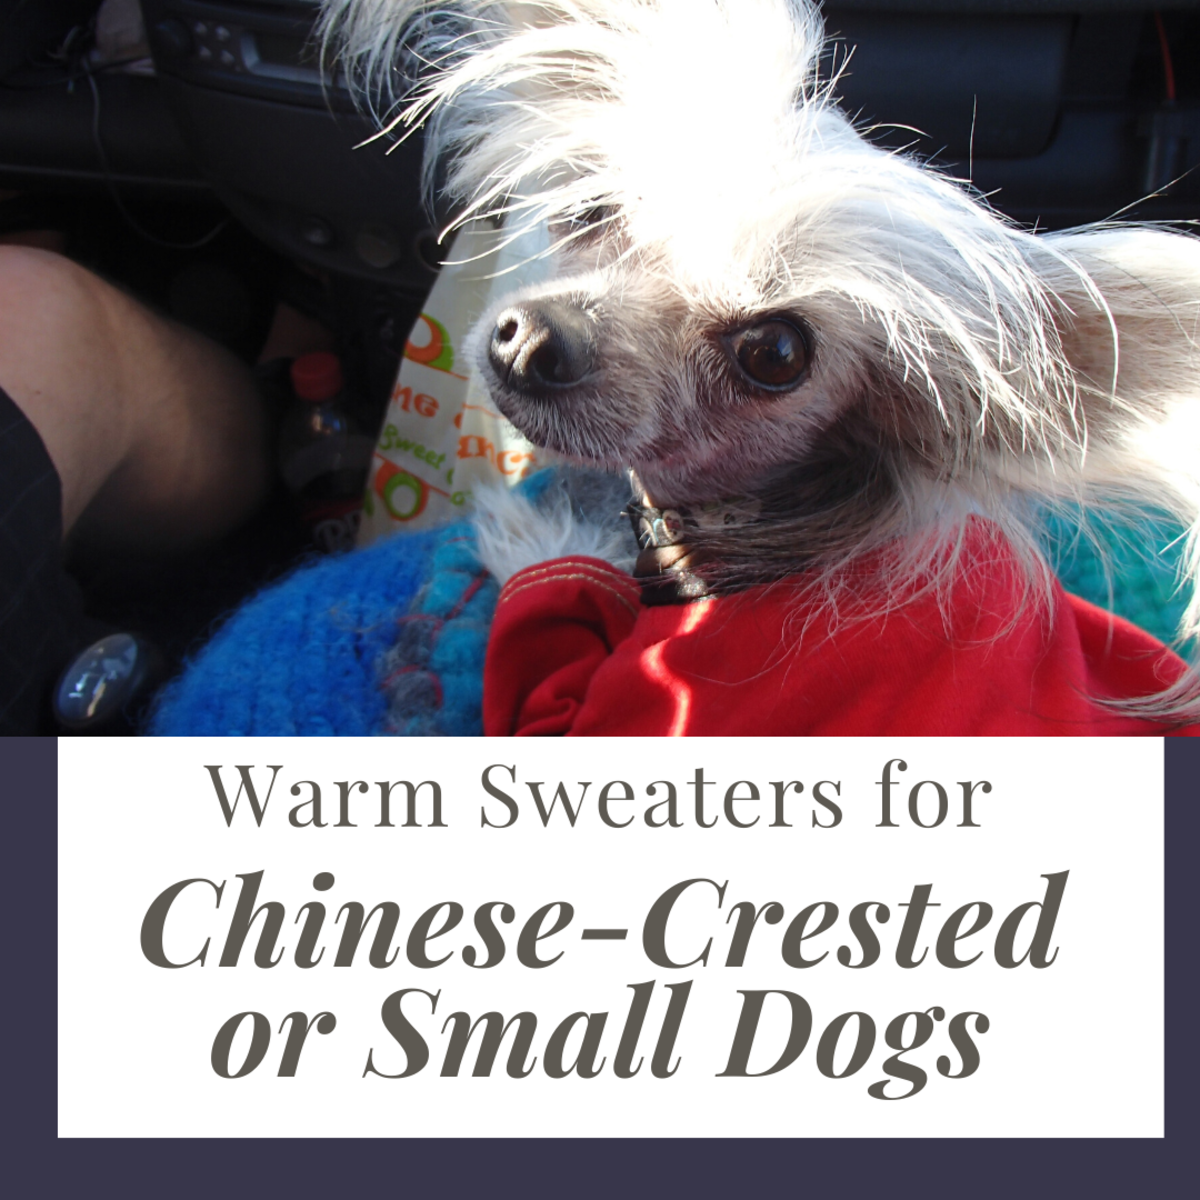 Warm Dog Sweaters for Your Chinese-Crested or Toy Breed